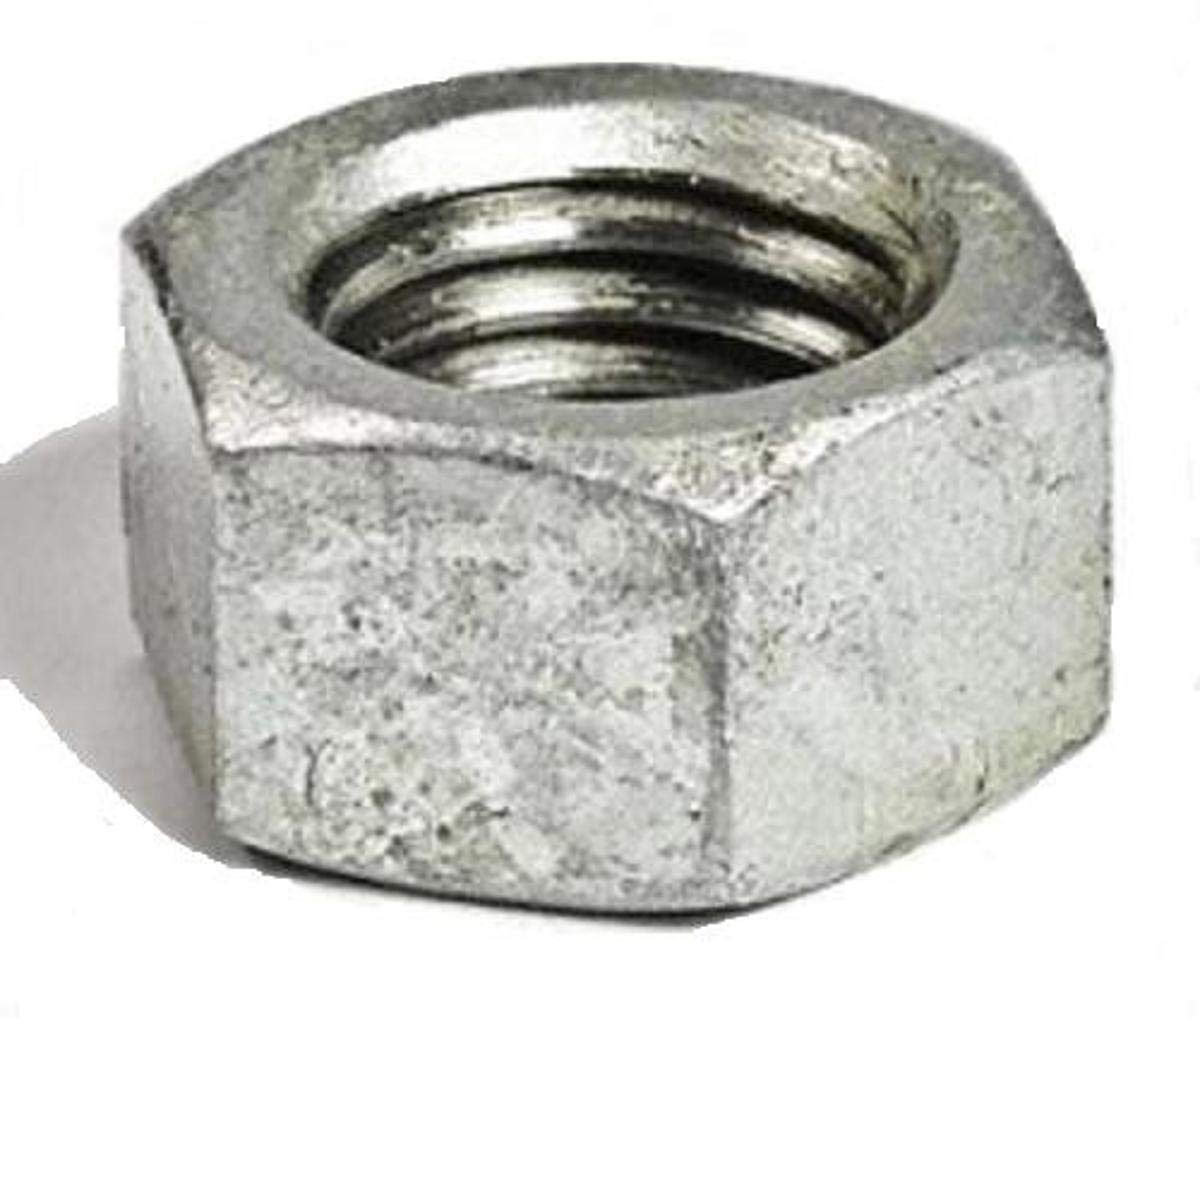 Small Seattle Mall Parts FSC14HNSG Low-Strength Steel Hex 2 Free Shipping New 1 Nut Grade 4